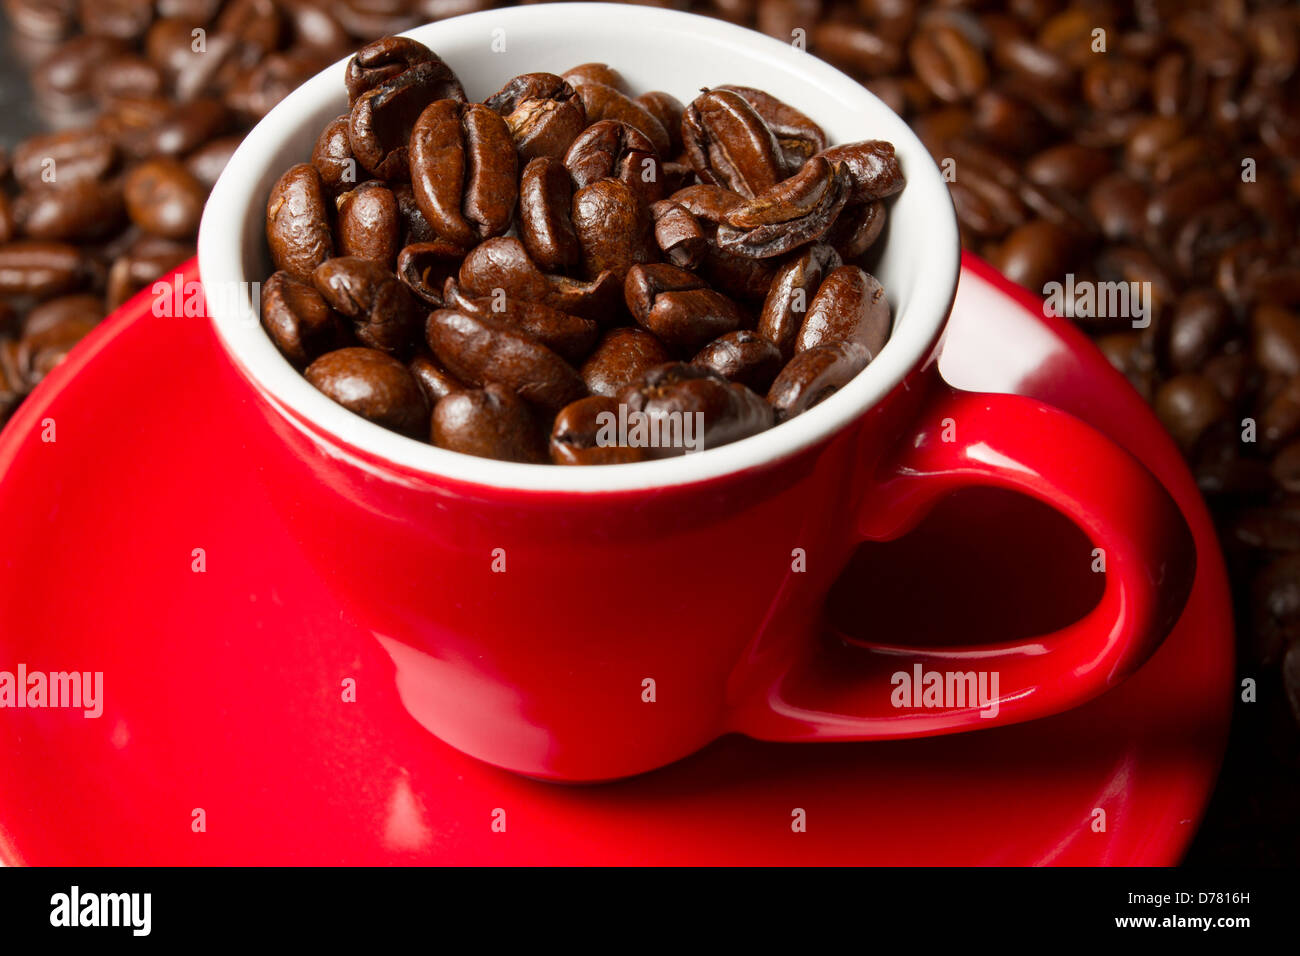 Coffee beans in a red espresso cup and saucer with fresh whole coffee beans in the background, England, UK - Stock Image